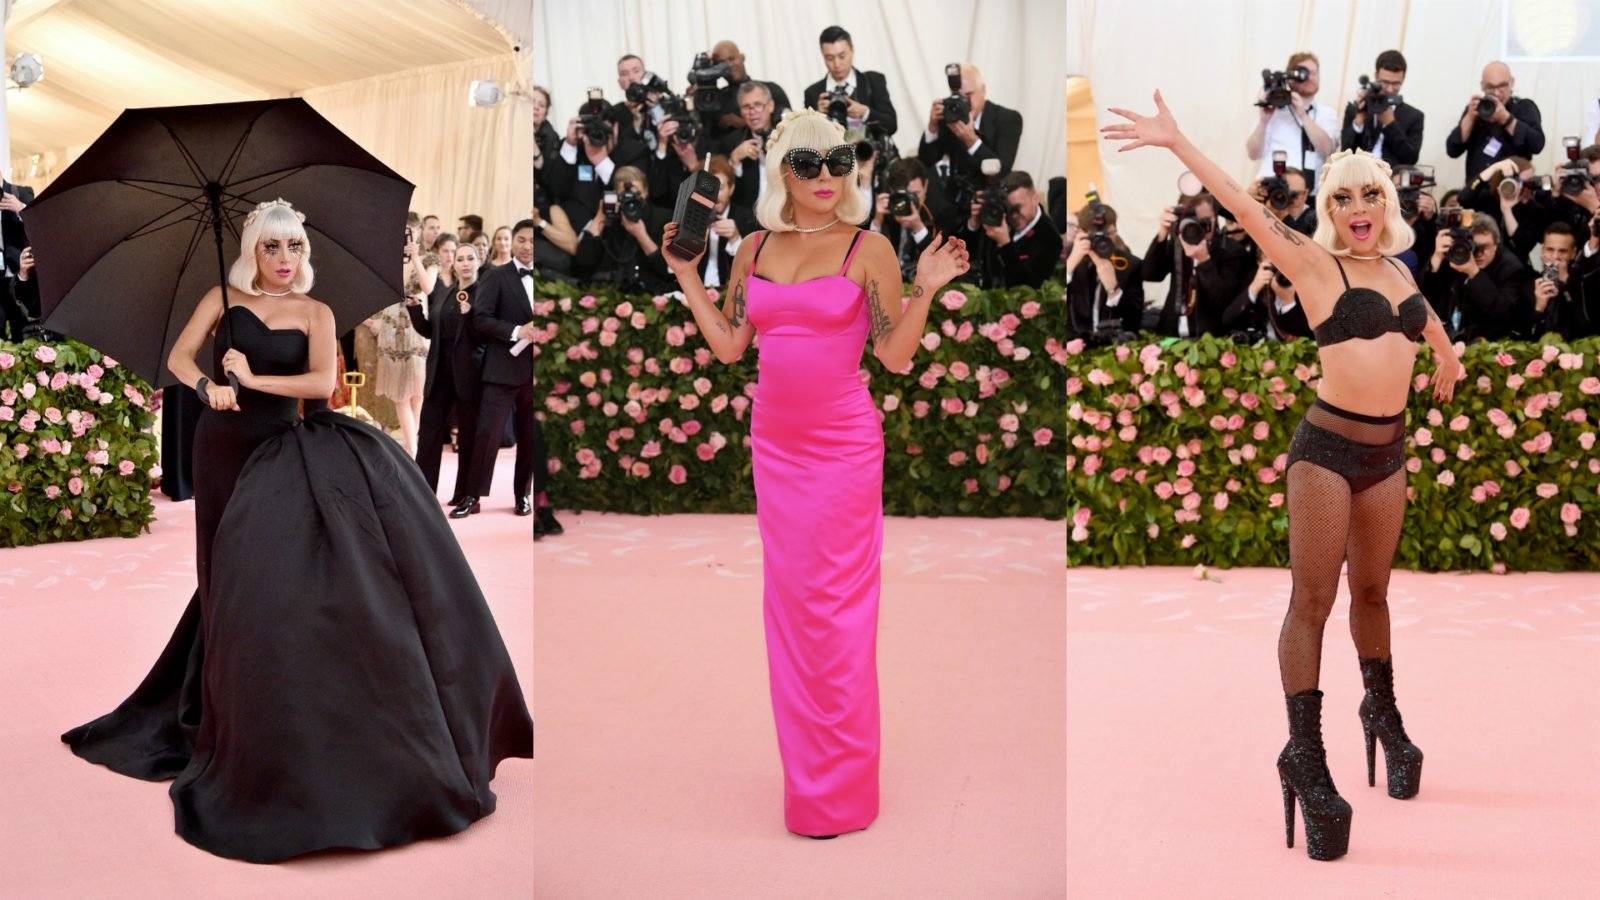 Lady Gaga did several outfit changes upon arrival at the Met Gala.